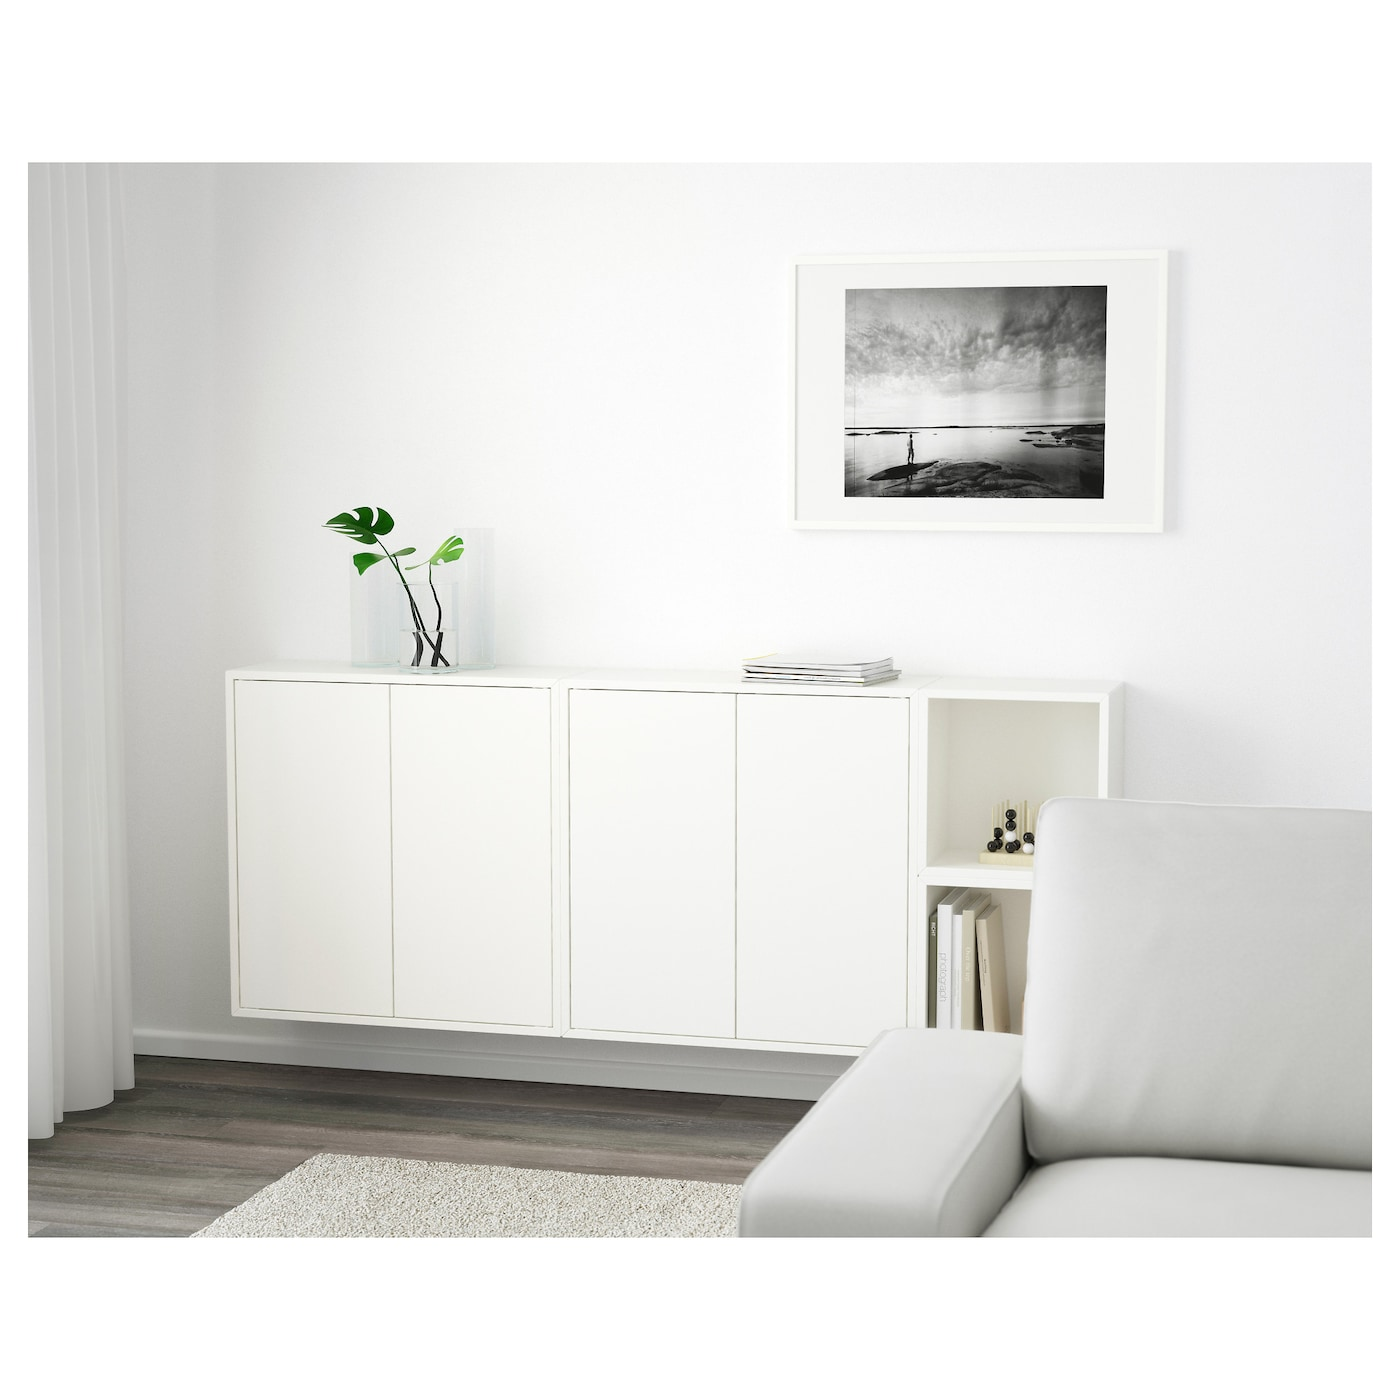 Wall-mounted cabinet combination EKET white